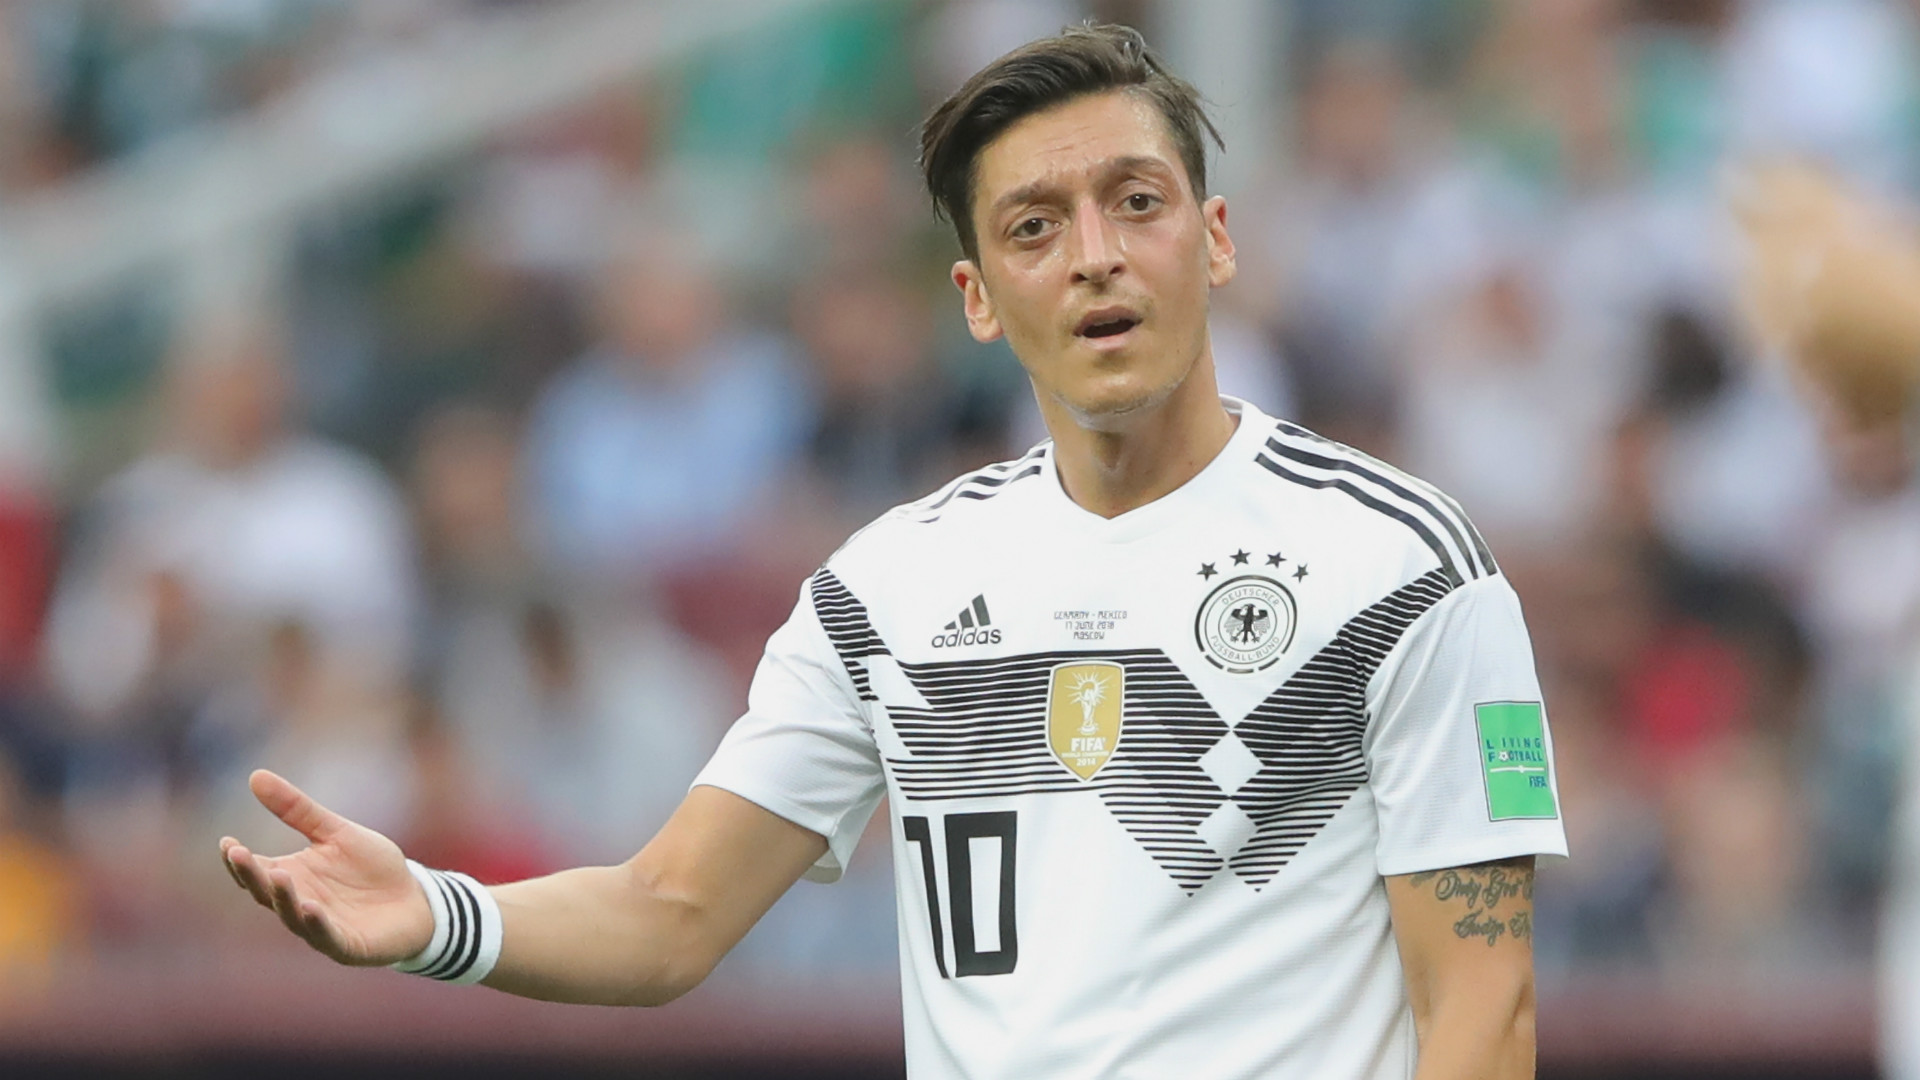 The End of Mesut Ozil's International Career